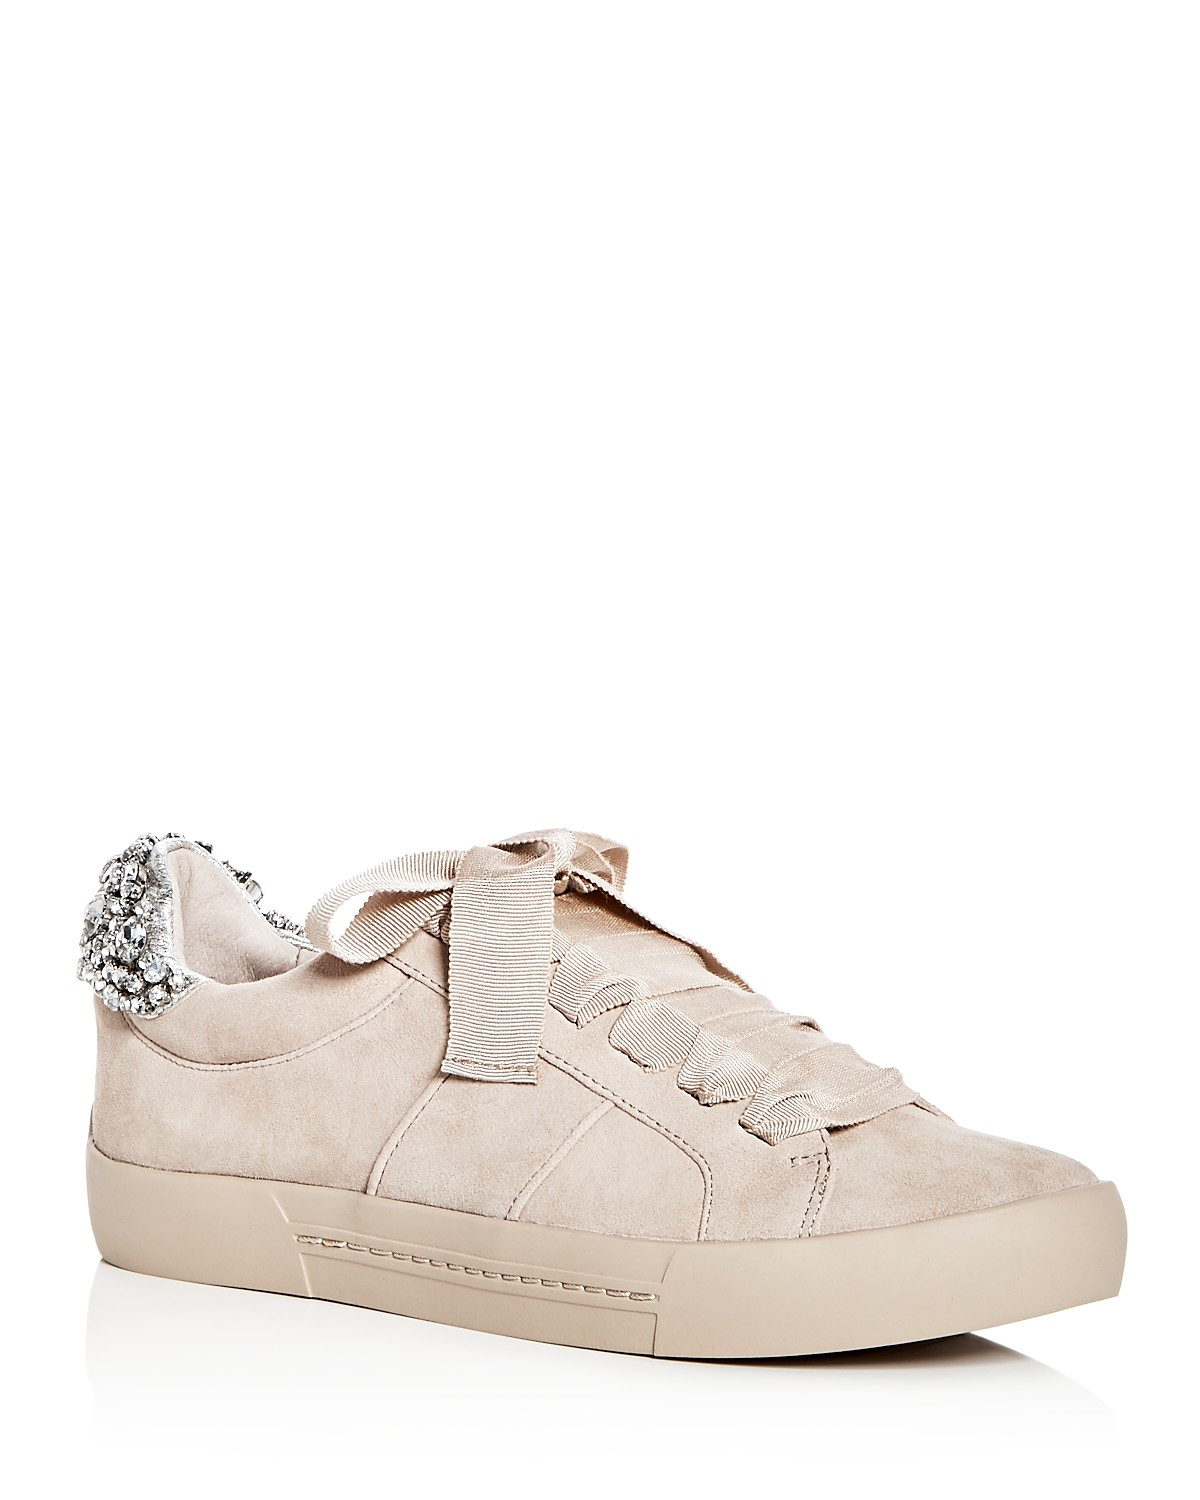 Joie Women's Darena Embellished Suede Lace Up Sneakers JwT9DS2s